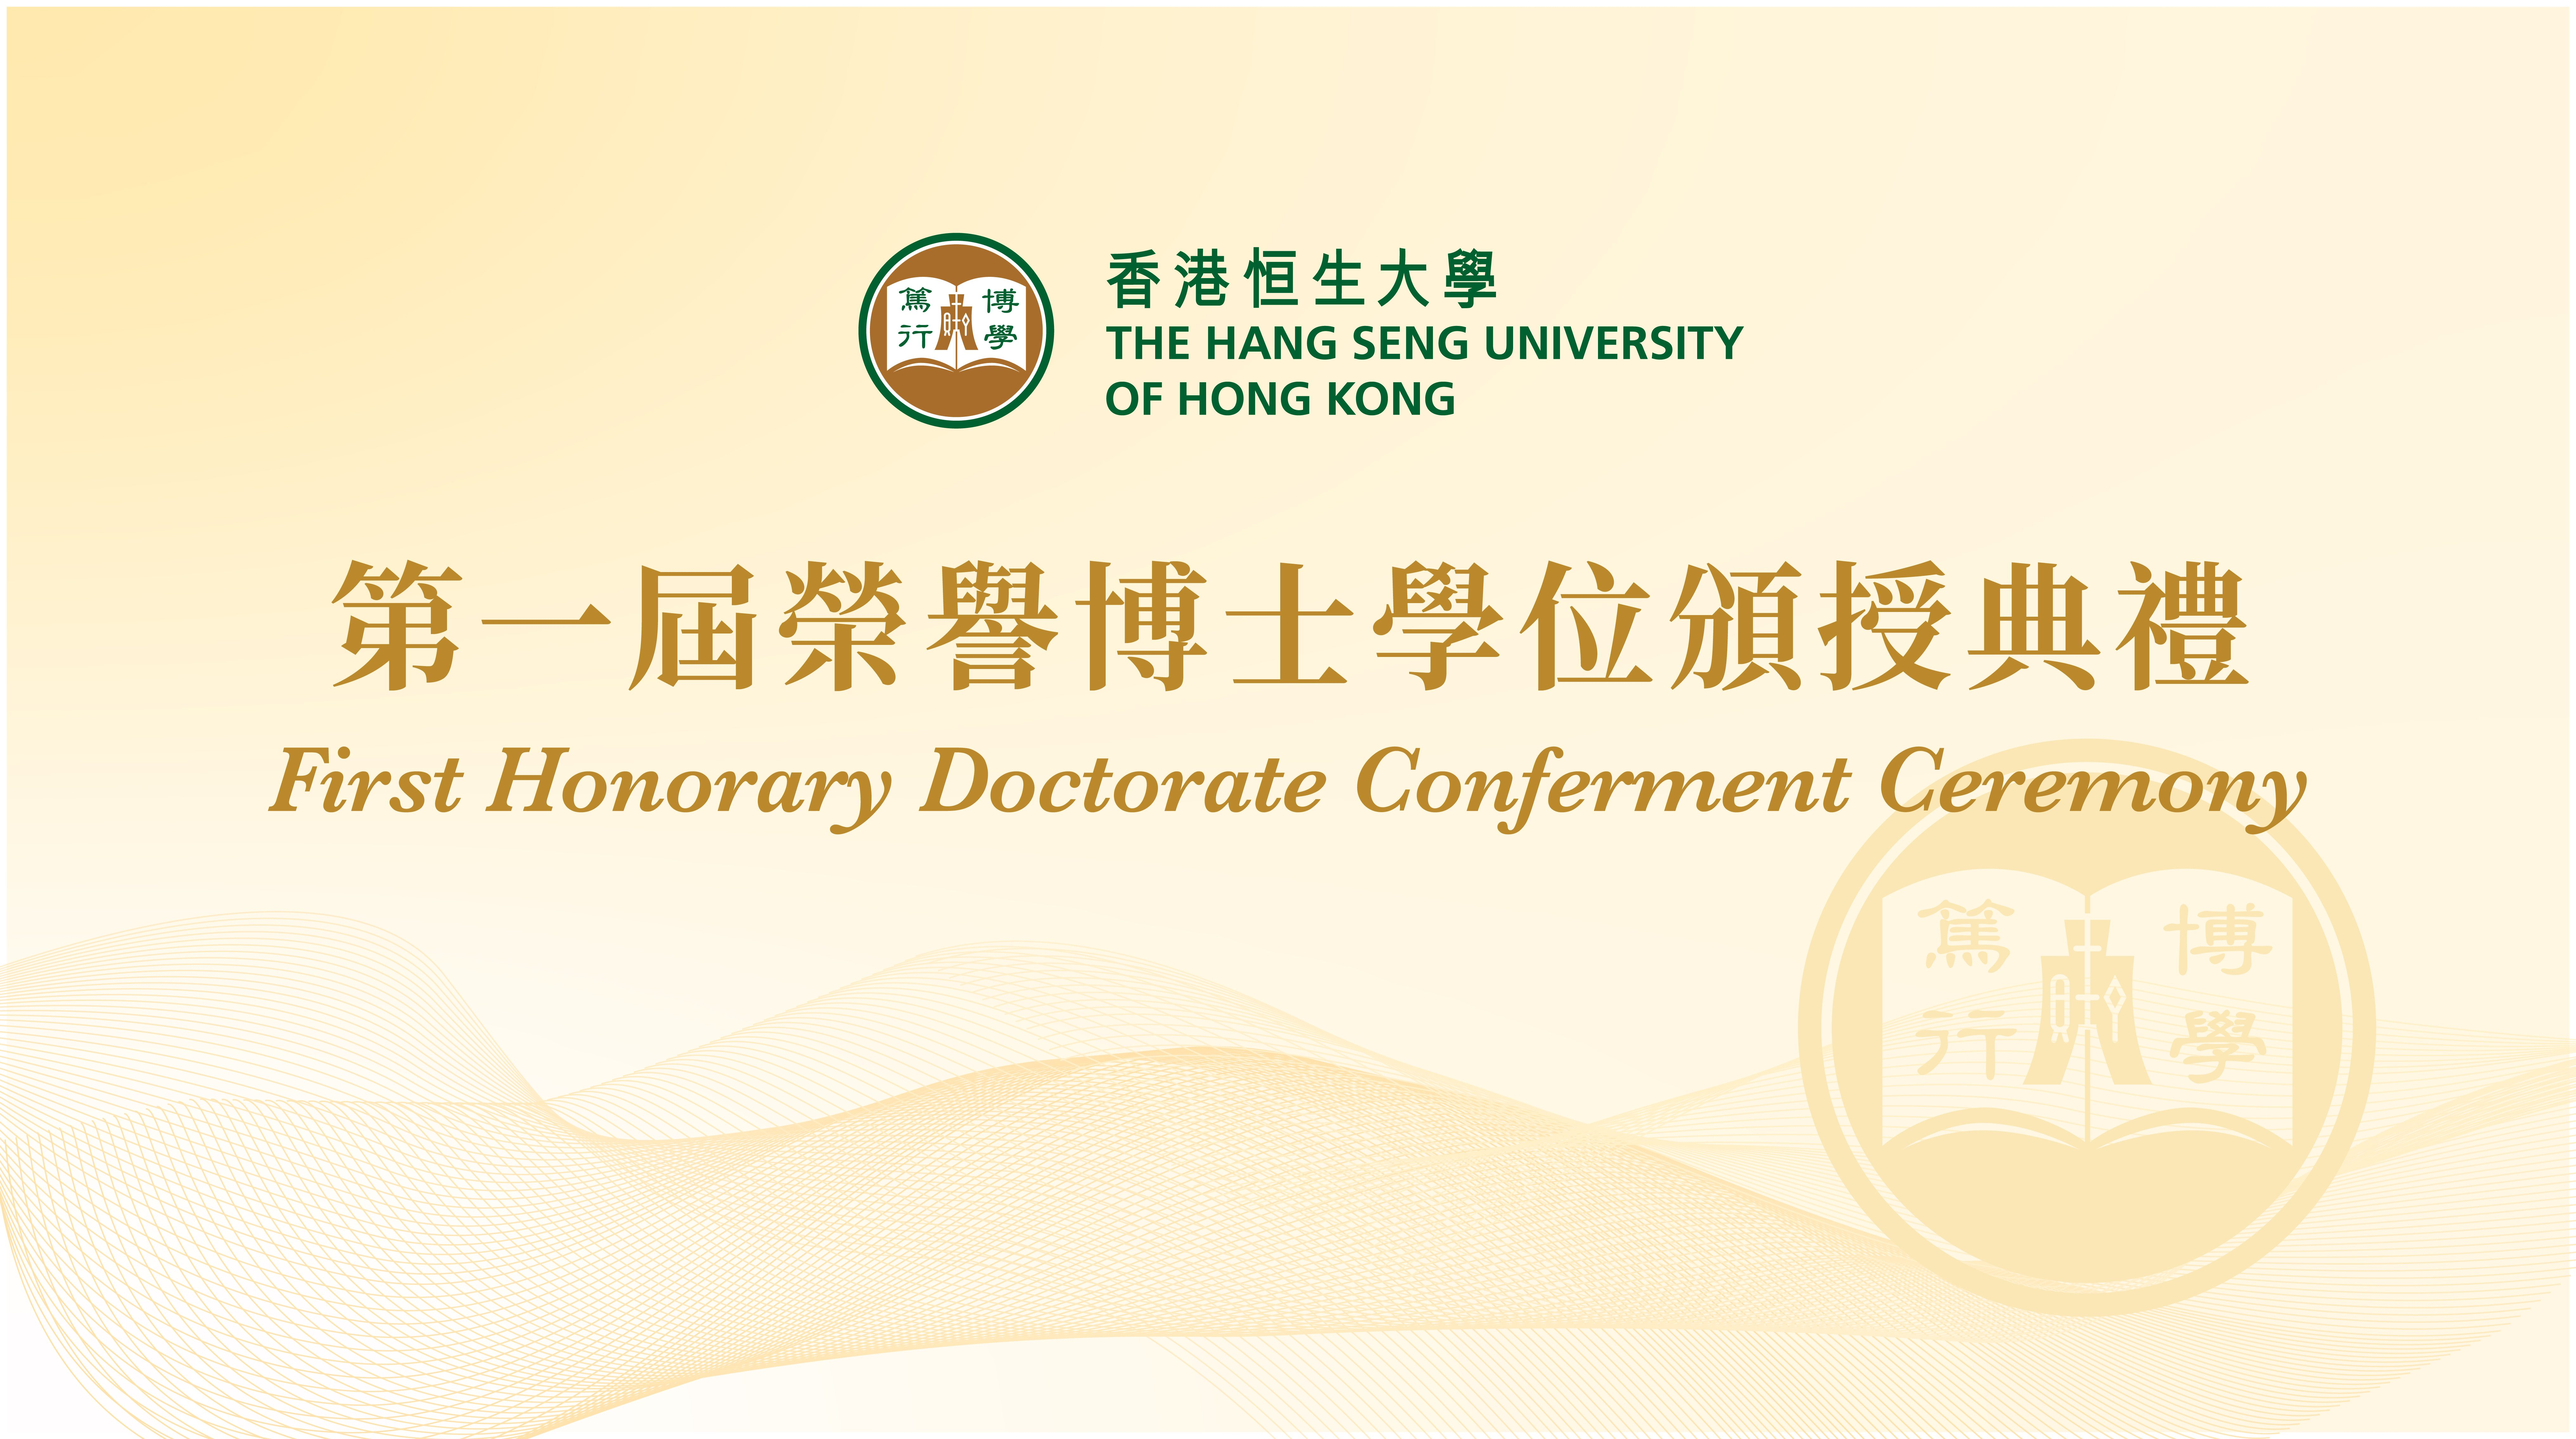 First Honorary Doctorate Conferment Ceremony